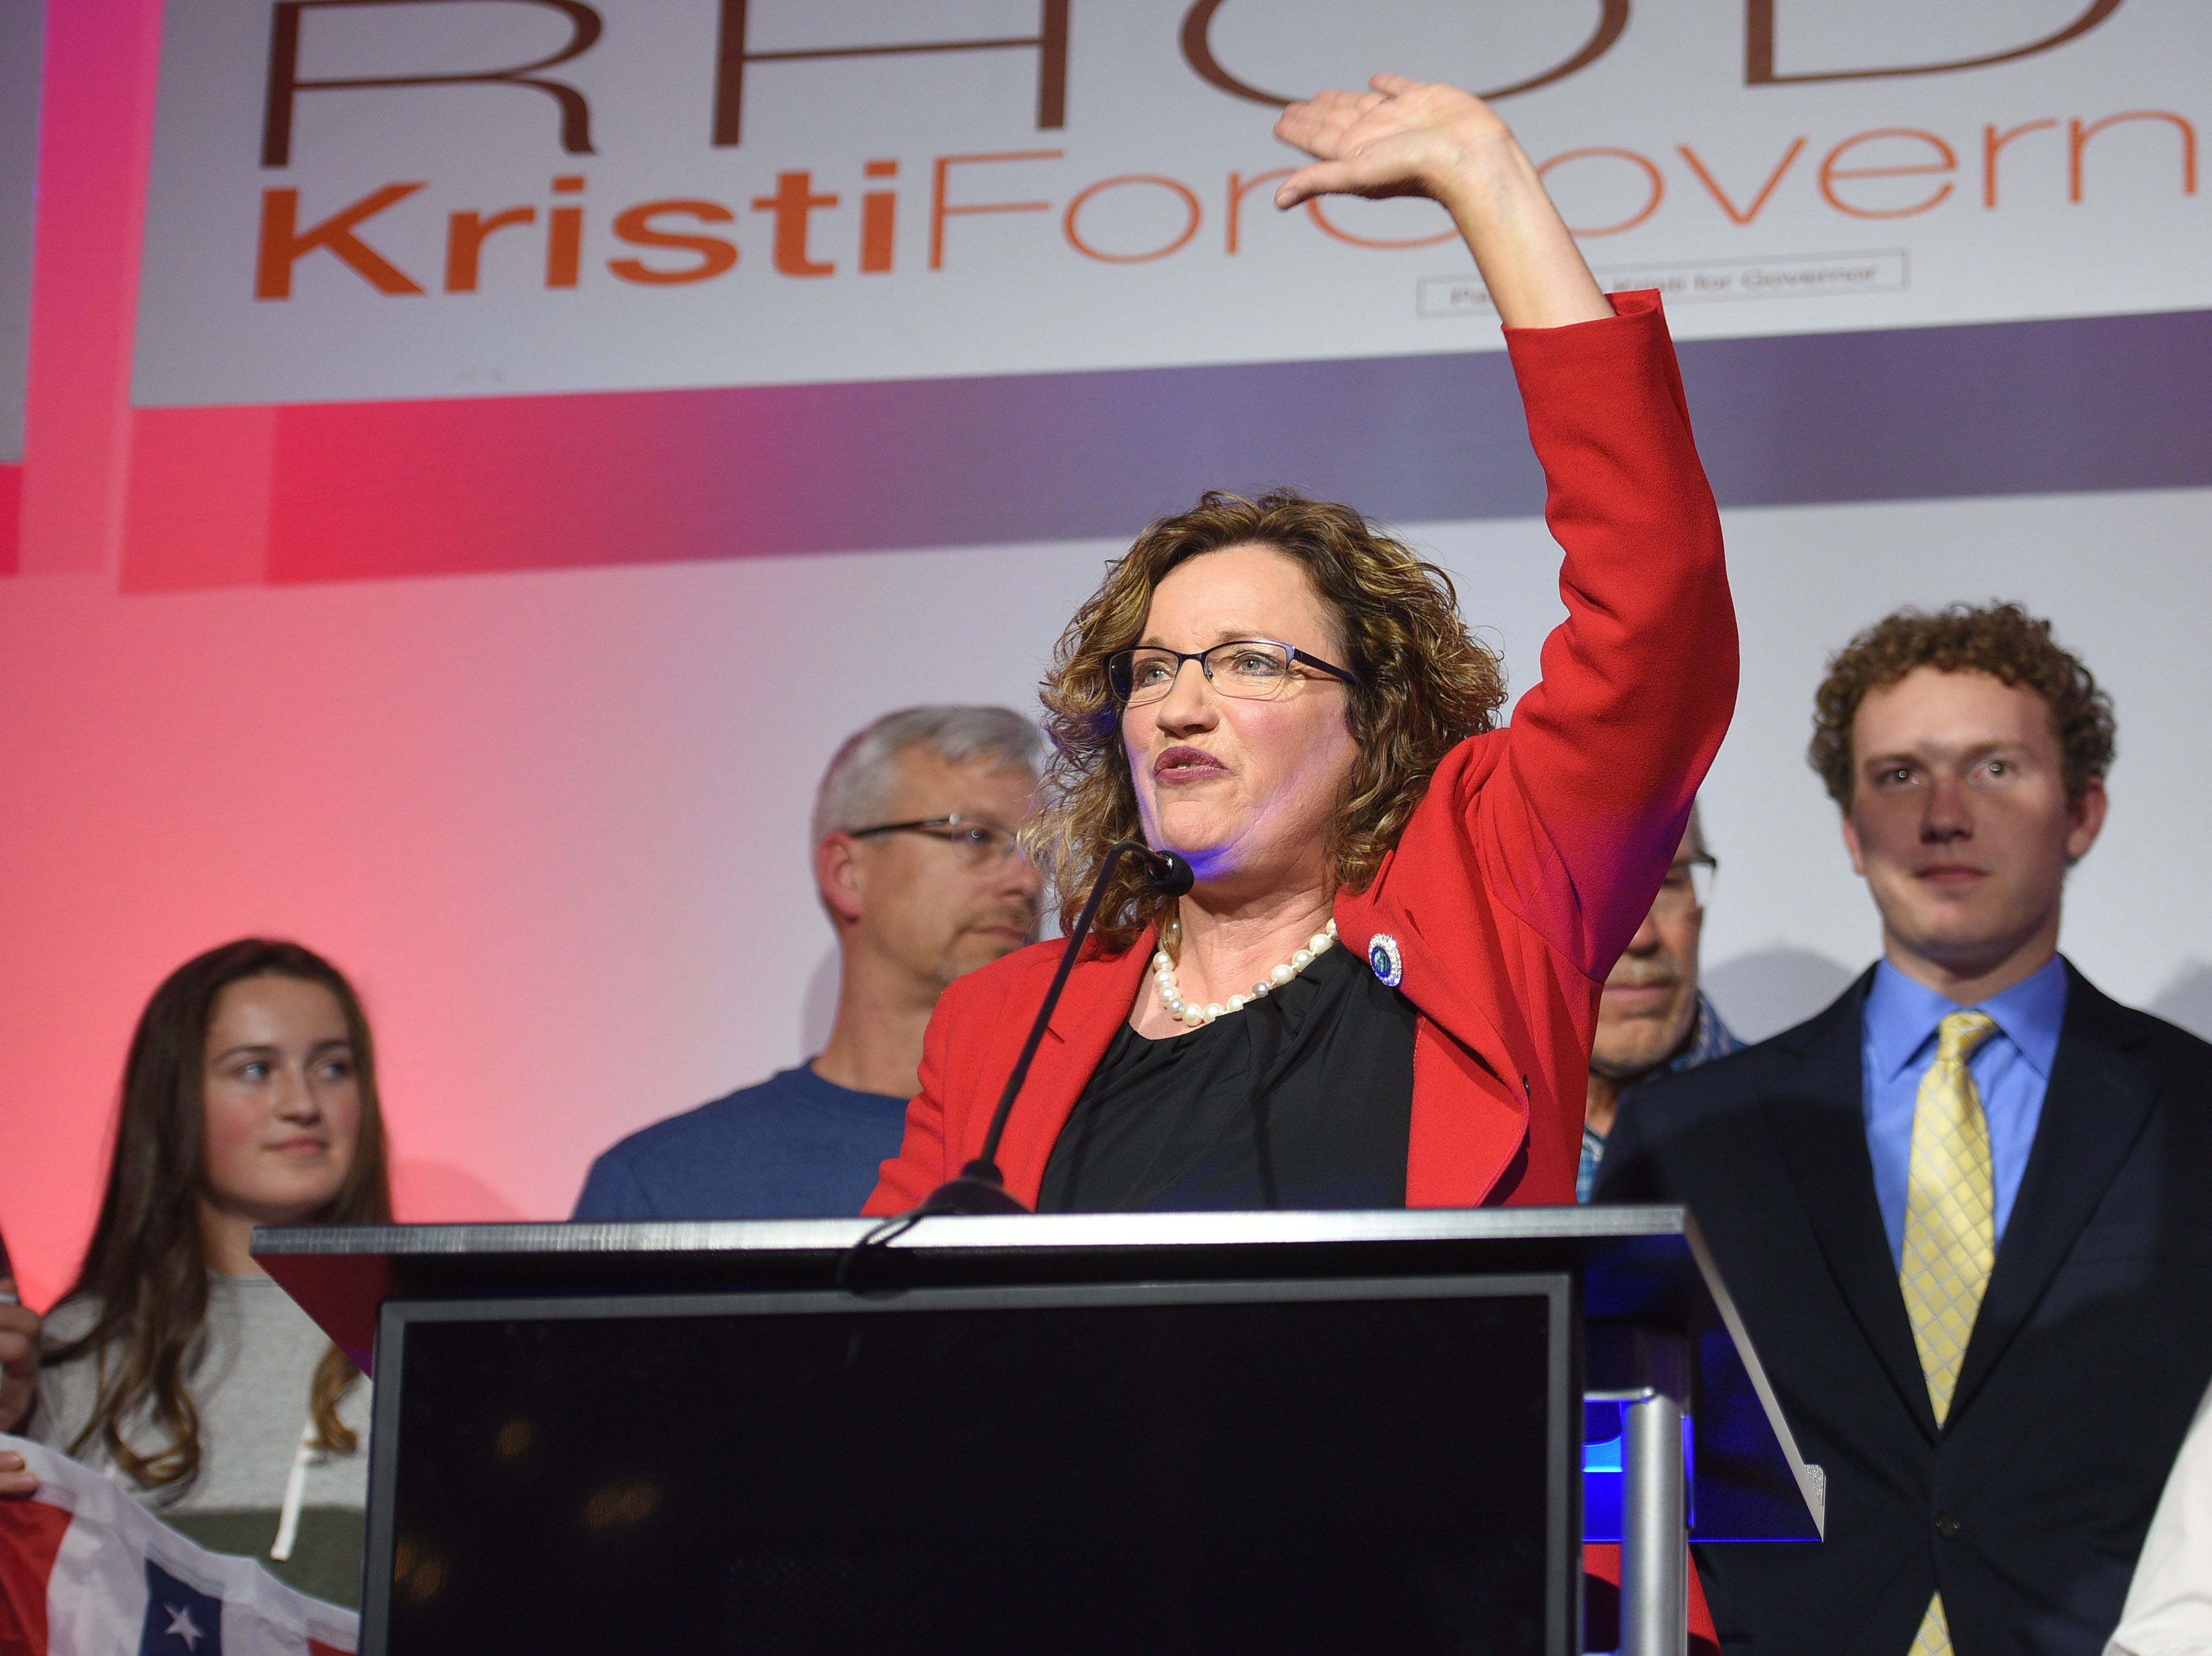 Kristie Fiegen makes a speech to supporters after results are announced Tuesday, Nov. 6, at the Hilton Garden Inn in Sioux Falls.